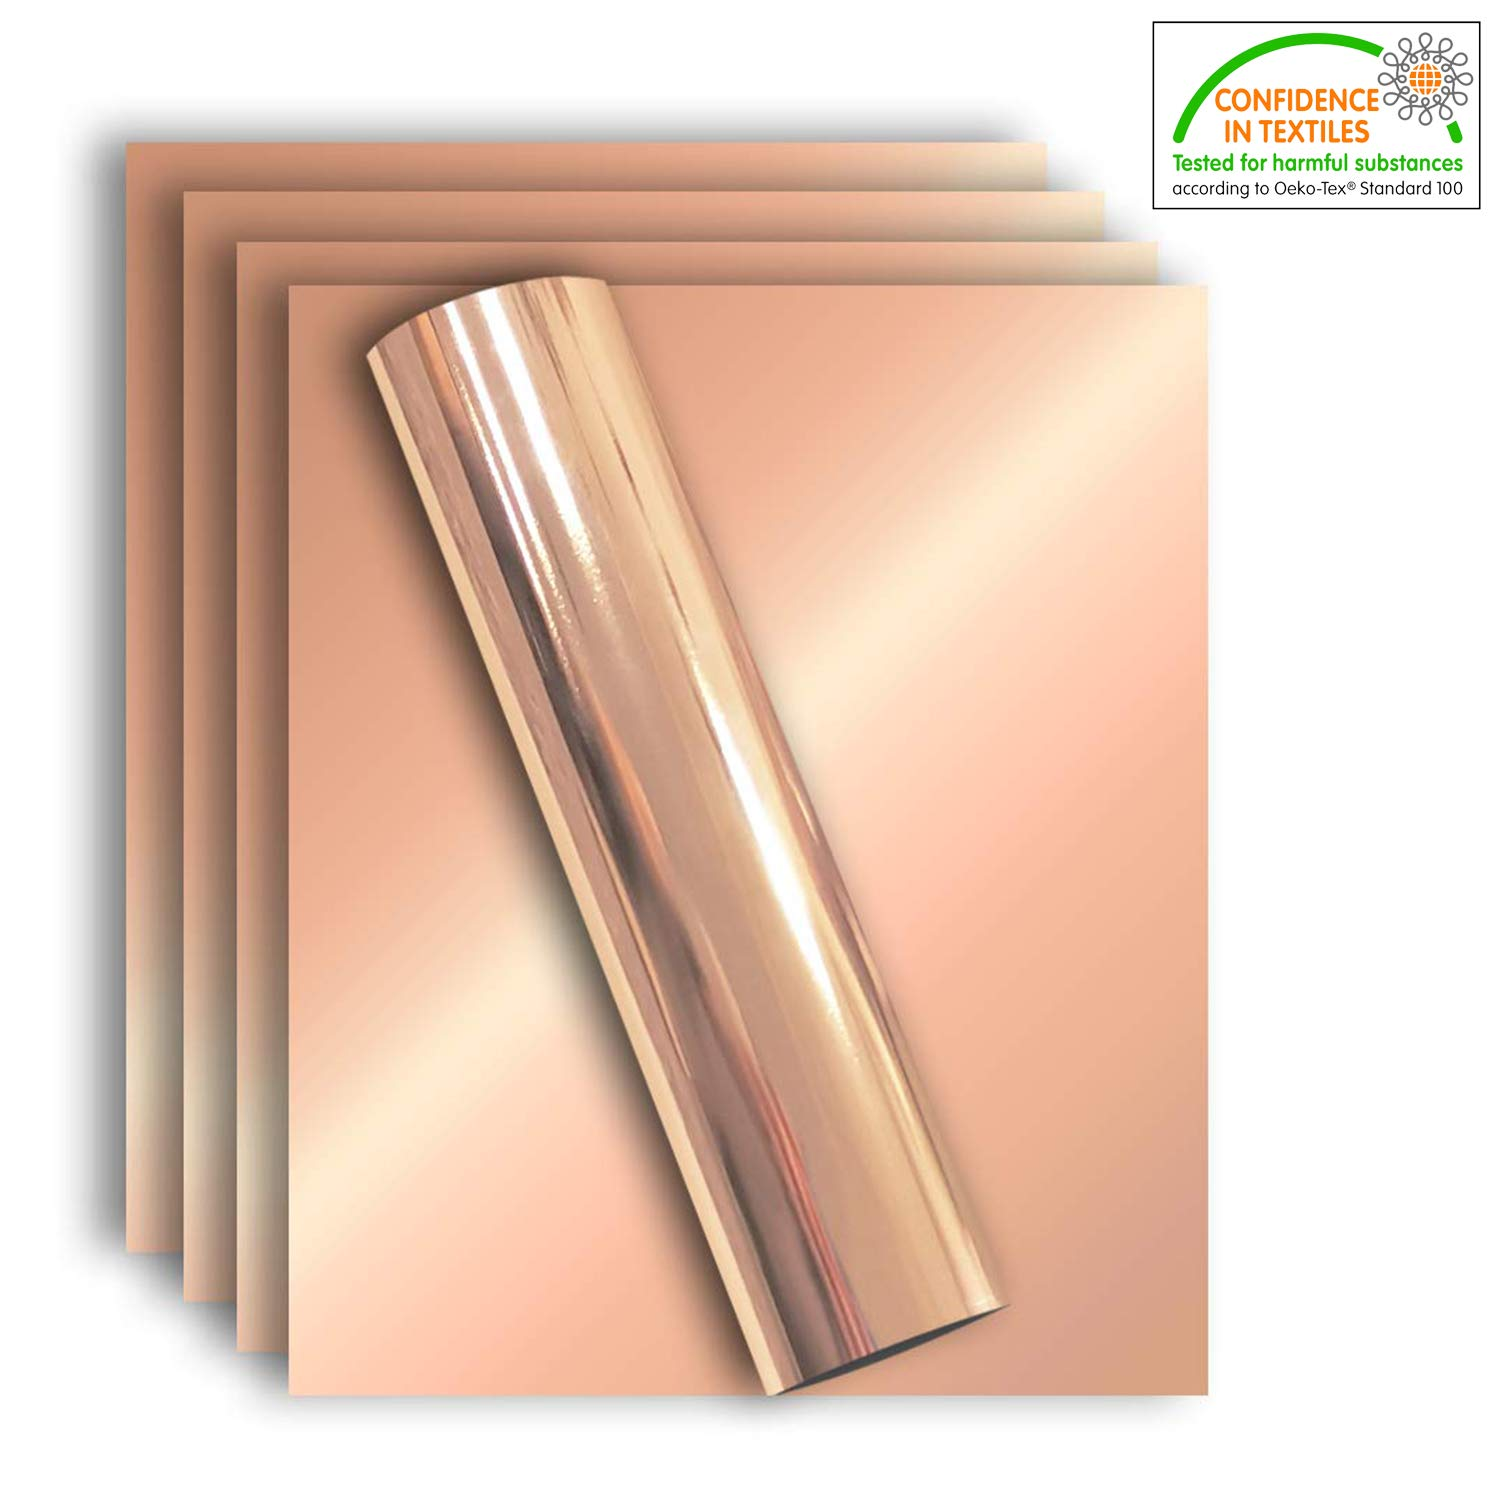 Stretchable Metallic Heat Transfer Vinyl Rose Gold Foil, Iron On HTV Bundle for DIY Your Own Clothes, 12x10 Inch, Pack of 5 Sheets, Eco-Friendly